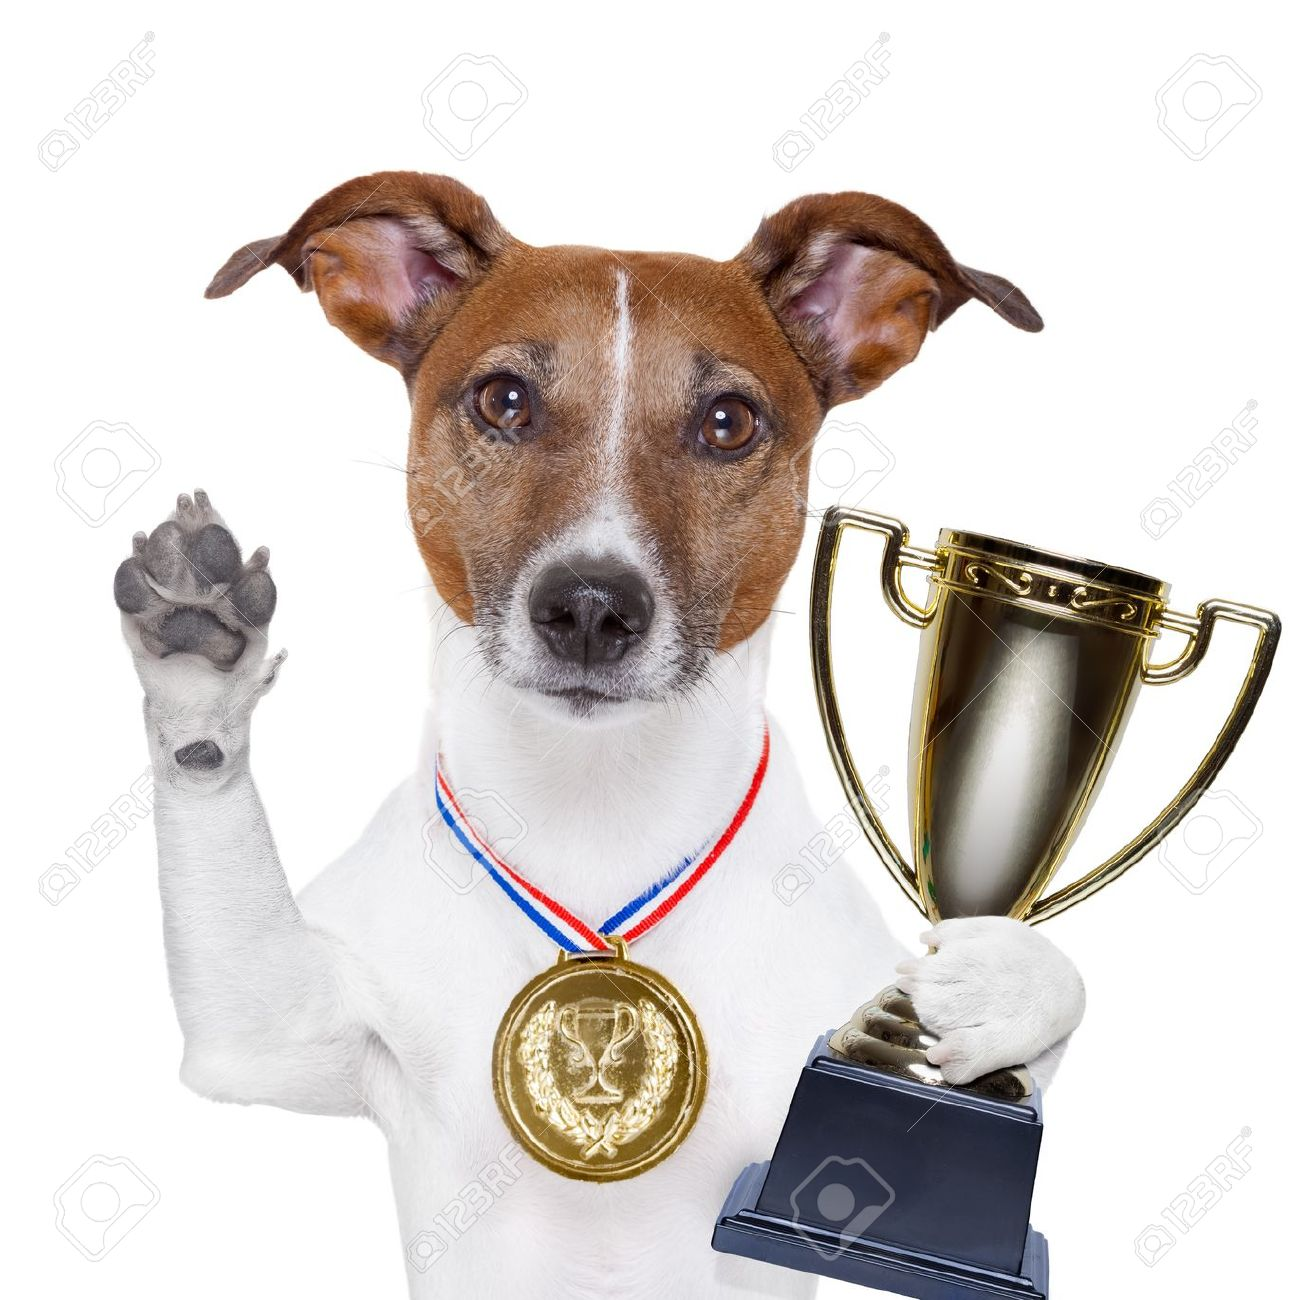 [Image: 17712454-champion-winning-dog-with-a-gold-medal.jpg]